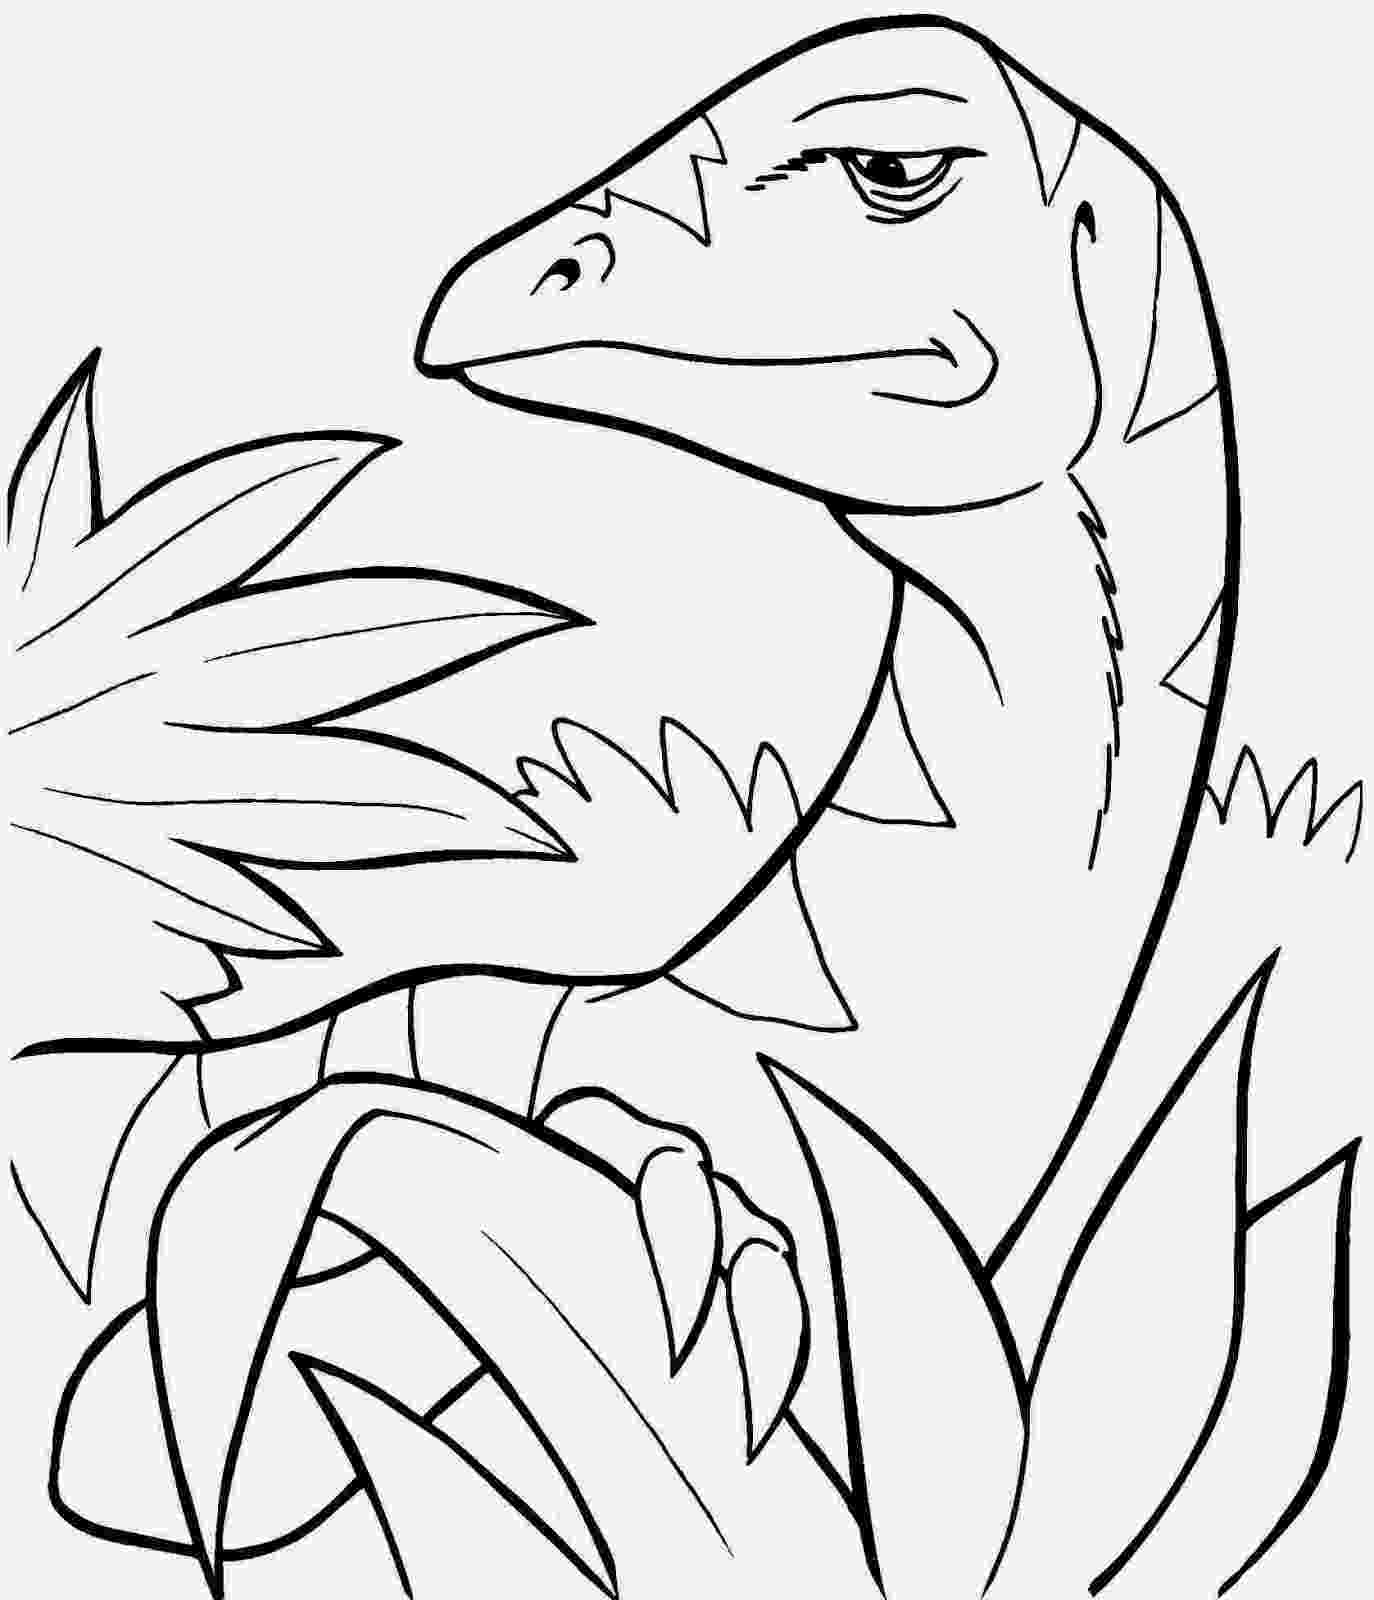 free printable dinosaur coloring pages dinosaur free printable coloring pages printable dinosaur free